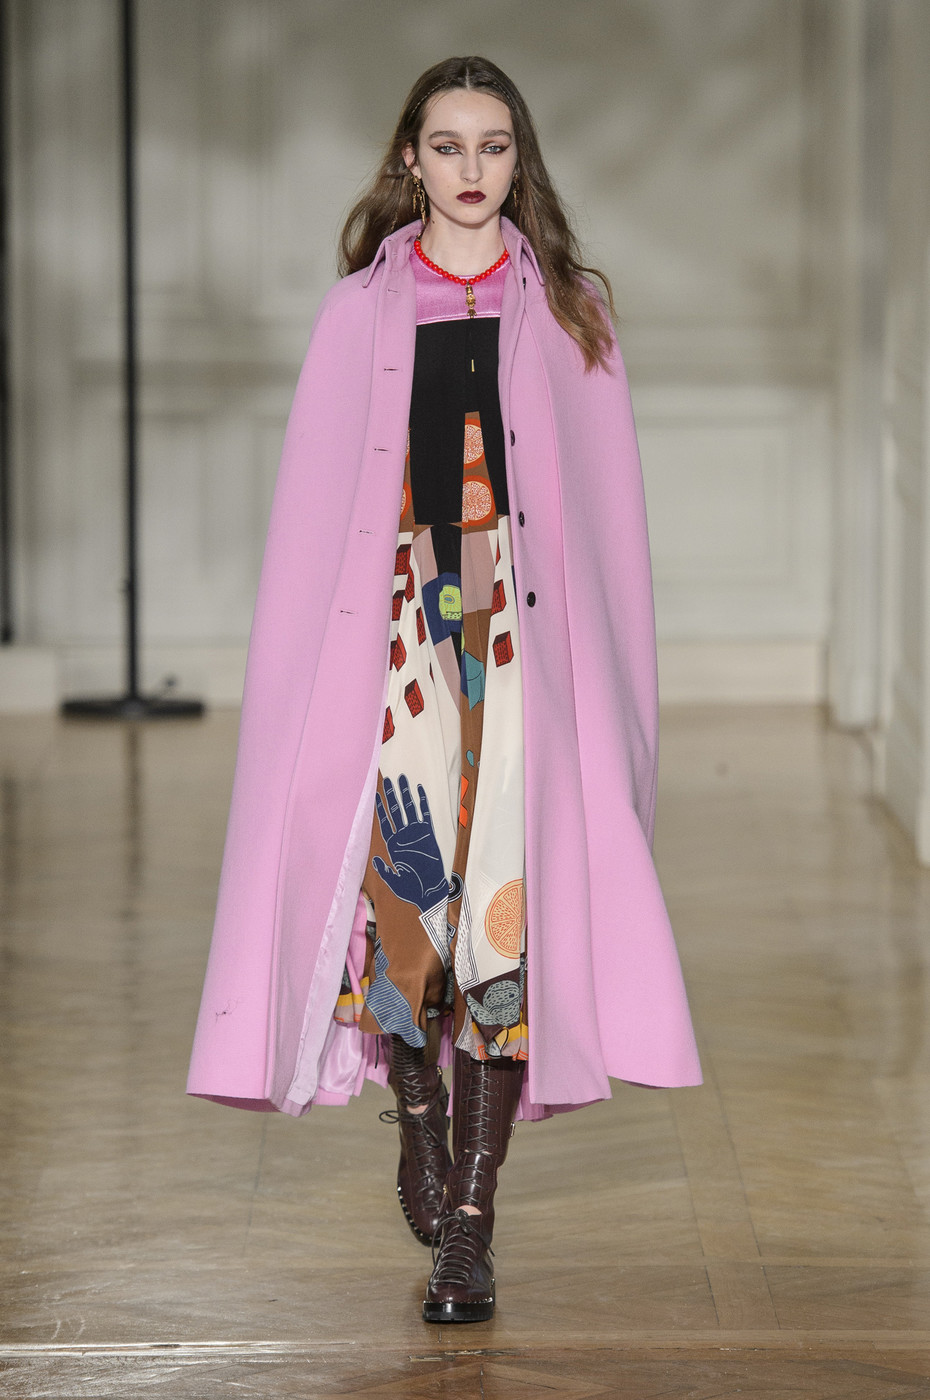 Valentino Fall 2017 The Prettiest Coats And Jackets From The Paris Runway Livingly